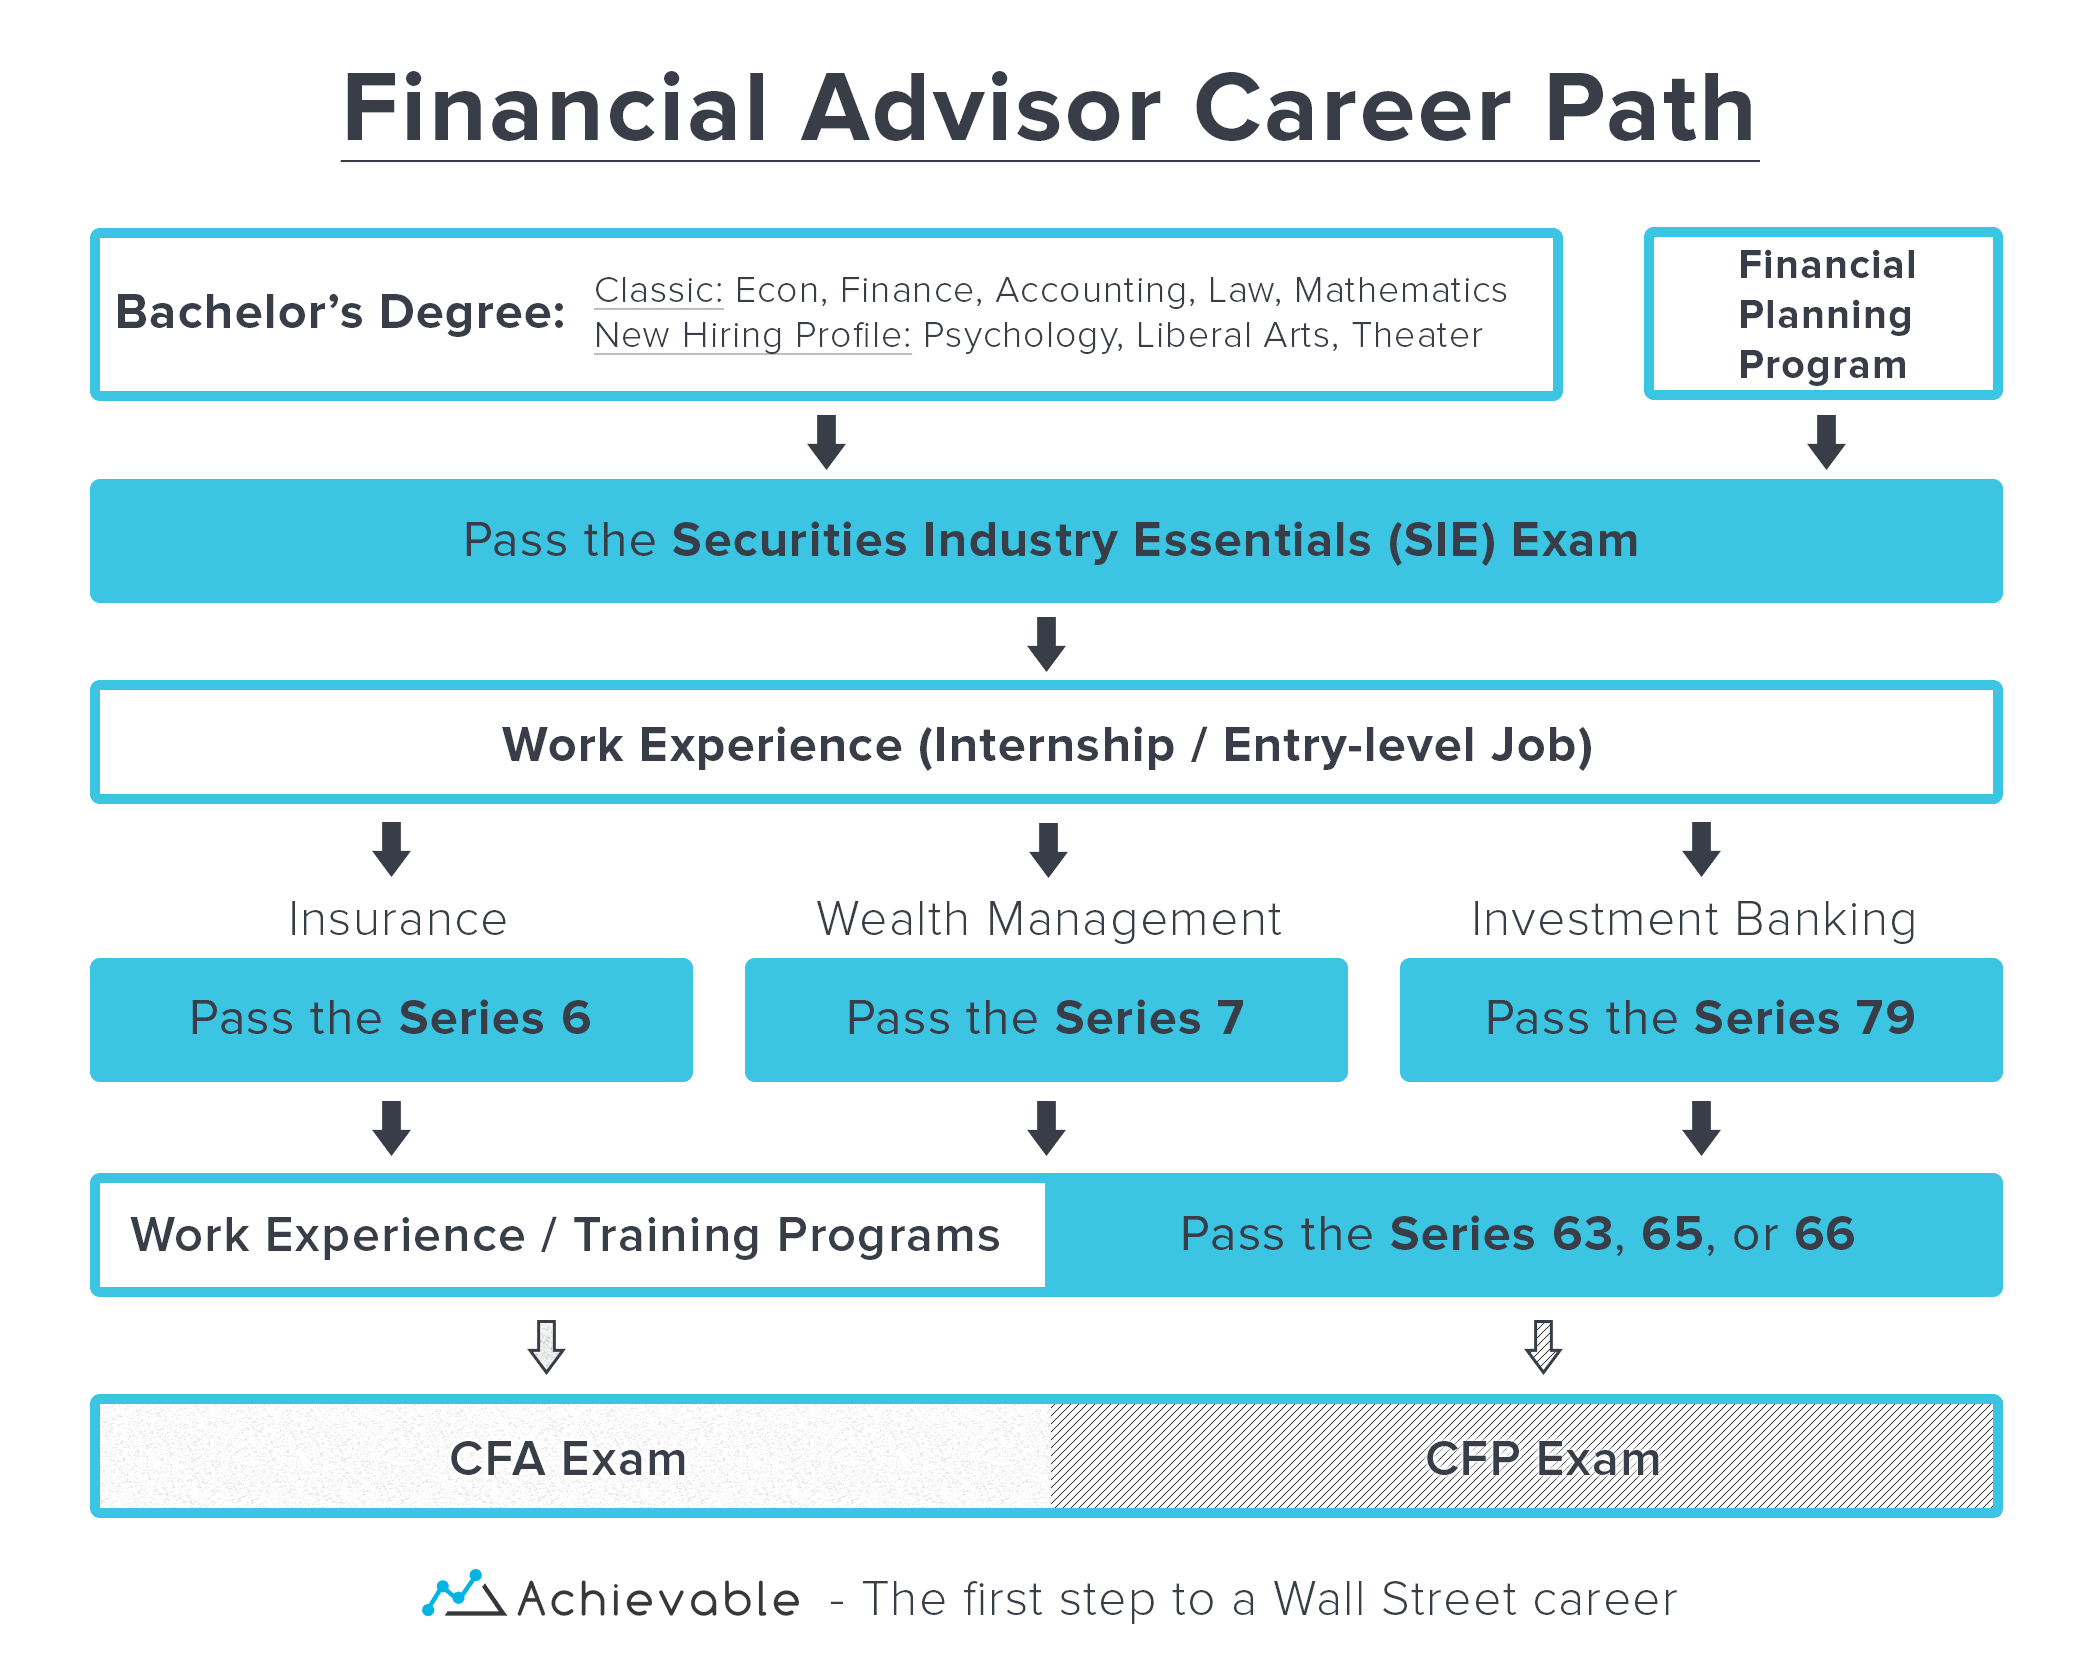 Financial Advisor Career Path